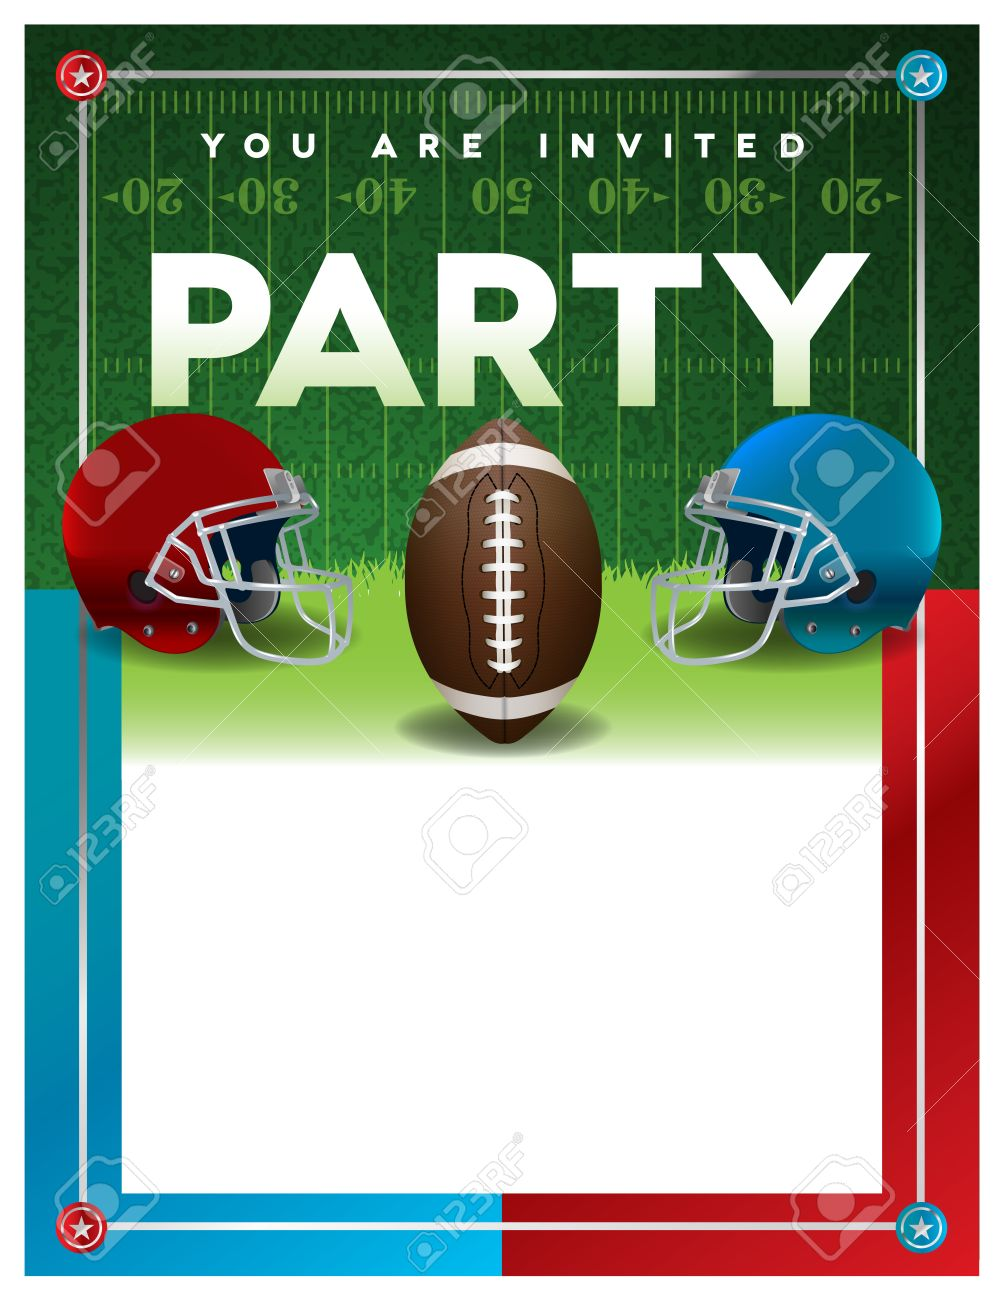 an american football party invitation flyer template design with